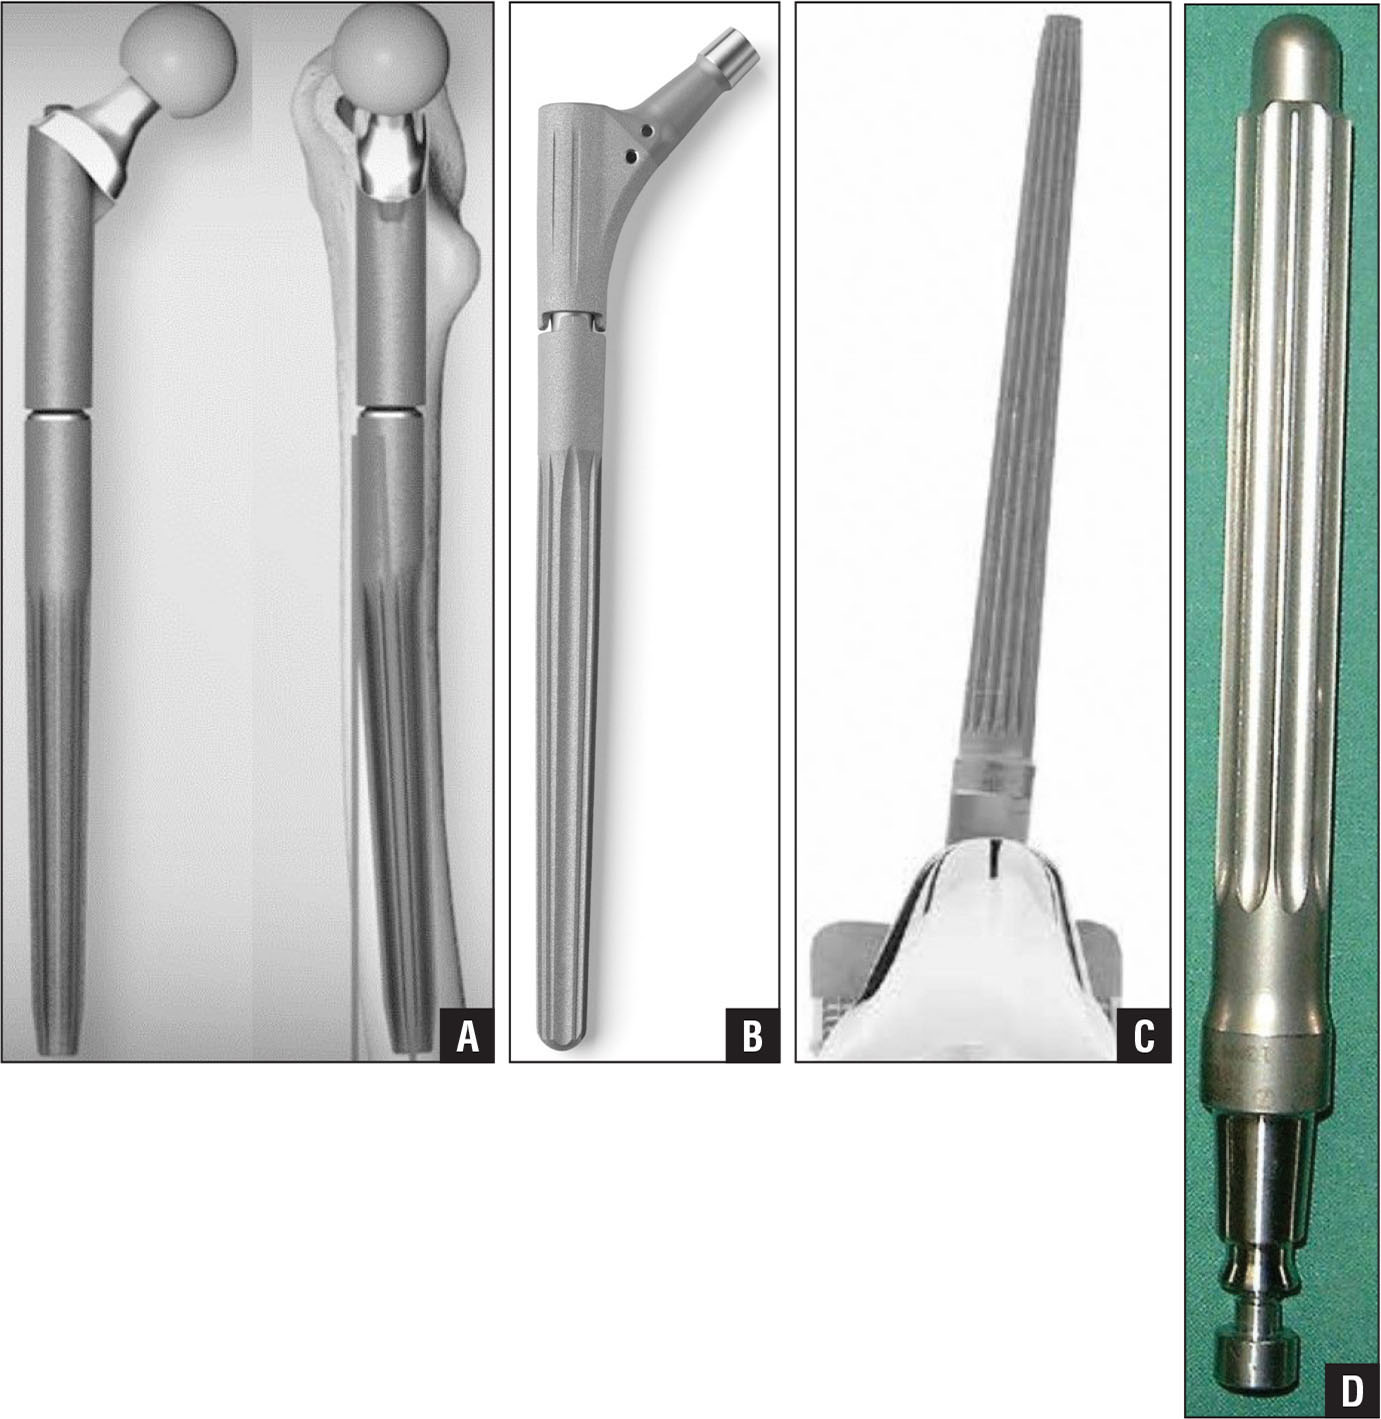 Tapered (2°) fluted stem with 3° antecurvation (MP reconstruction prothesis; Waldemar Link GmbH & Co KG, Hamburg, Germany) (A). Straight tapered (2°) stem with longitudinal sharp ribs (Revitan Hip System; Zimmer Biomet, Warsaw, Indiana) (B). Tapered (2°) stem with longitudinal fluting (Endo-Modell SL; Waldemar Link GmbH & Co KG) (C). Straight cylindrical stem (NexGen; Zimmer Biomet) (D). (All photographs courtesy of Waldemar Link GmbH & Co KG and Zimmer Biomet.)